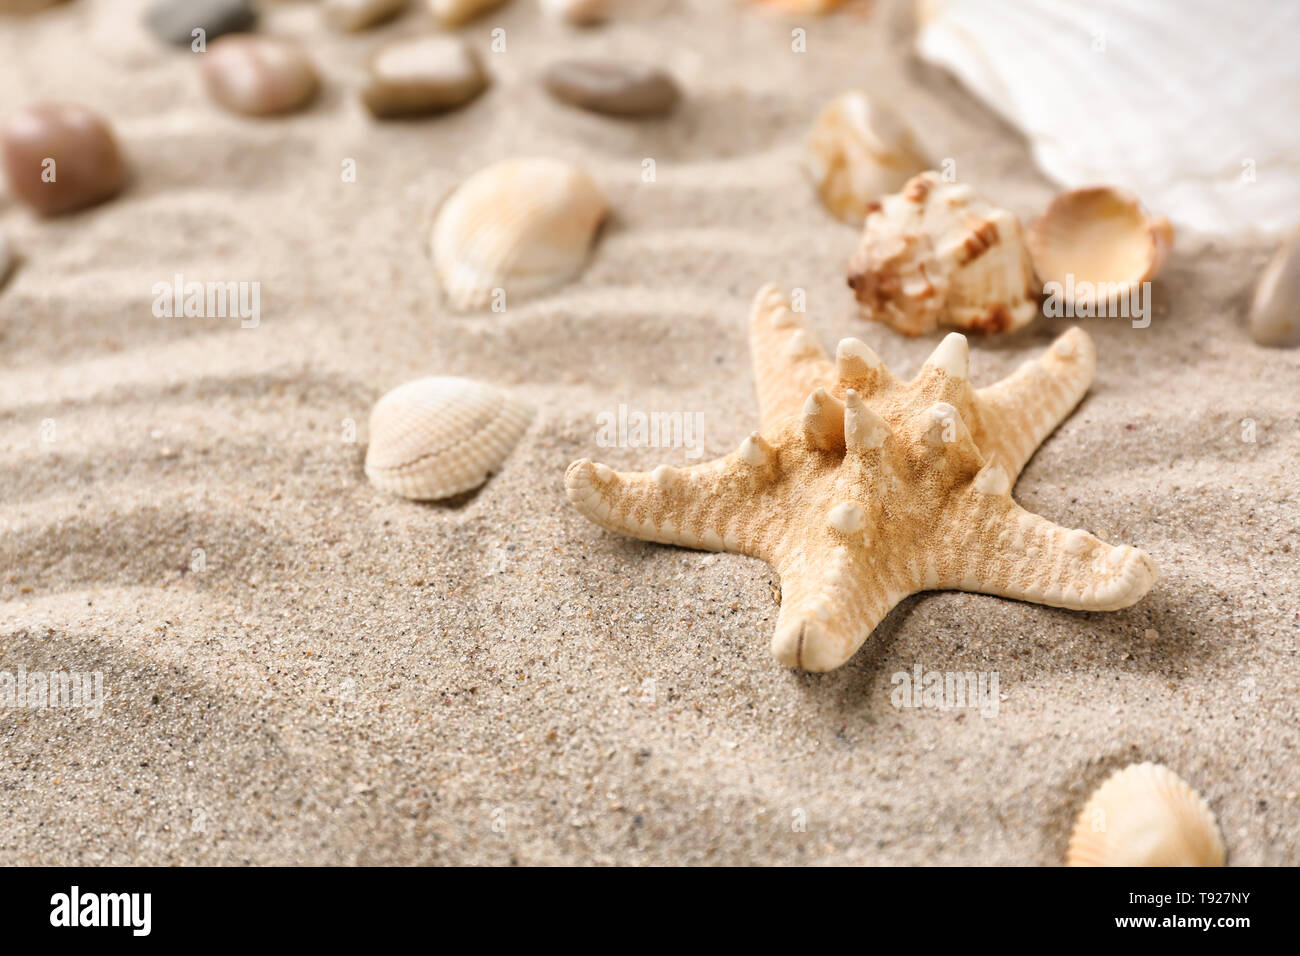 Different sea shells with starfish on sand - Stock Image